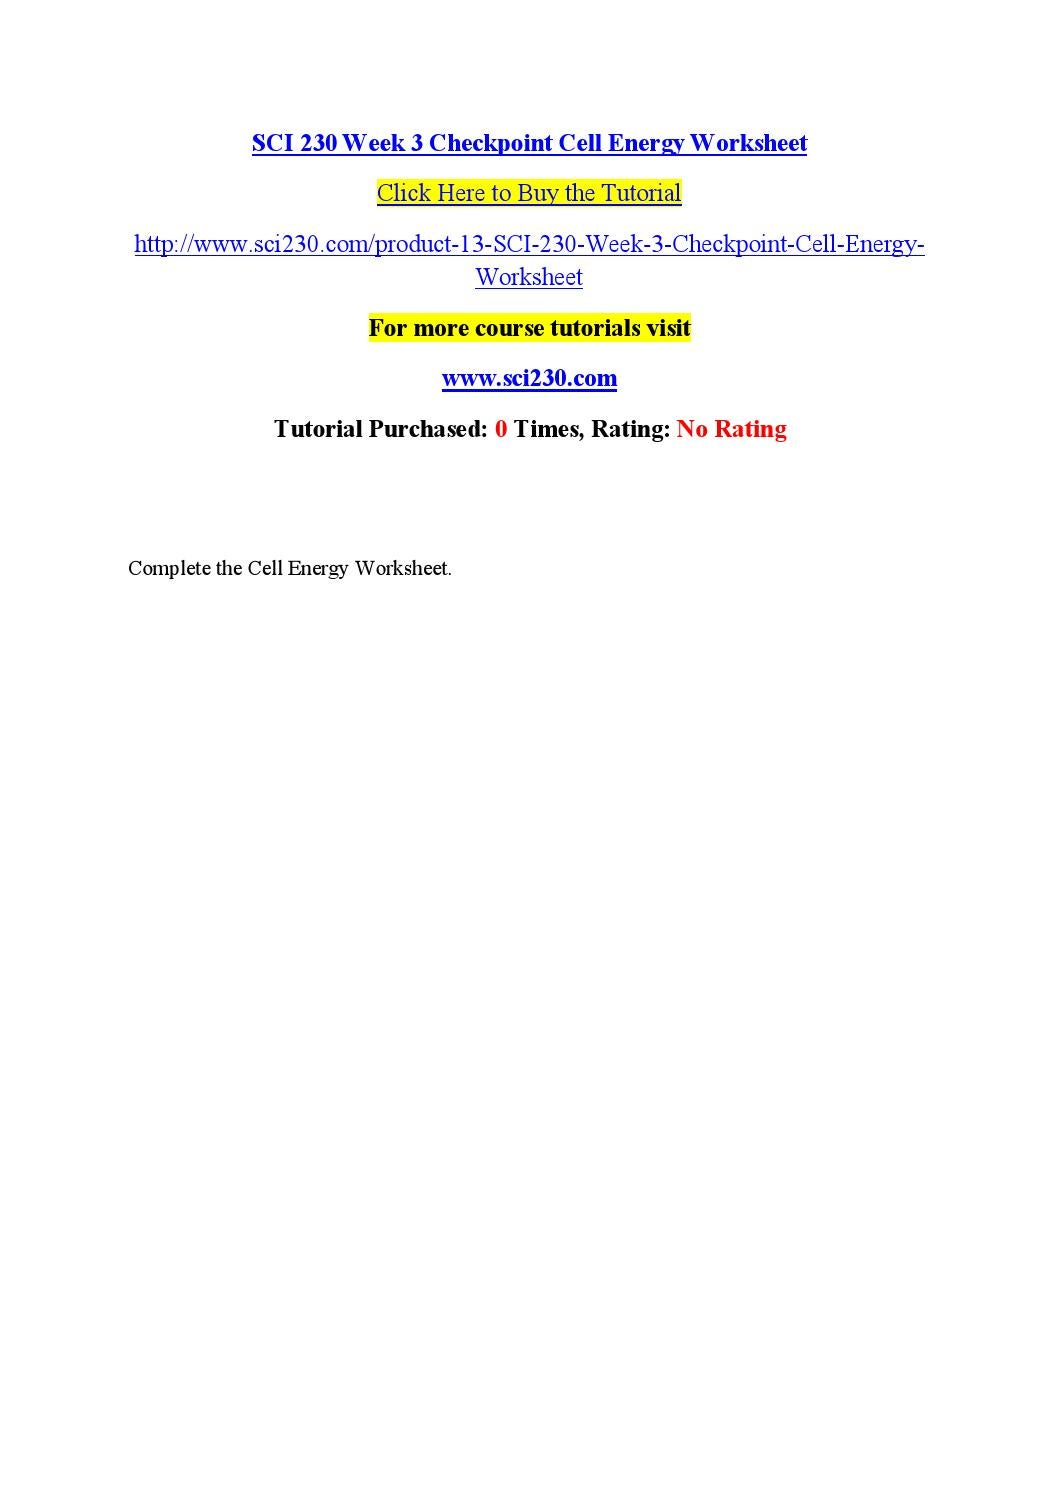 Sci 230 week 3 checkpoint cell energy worksheet by john - issuu